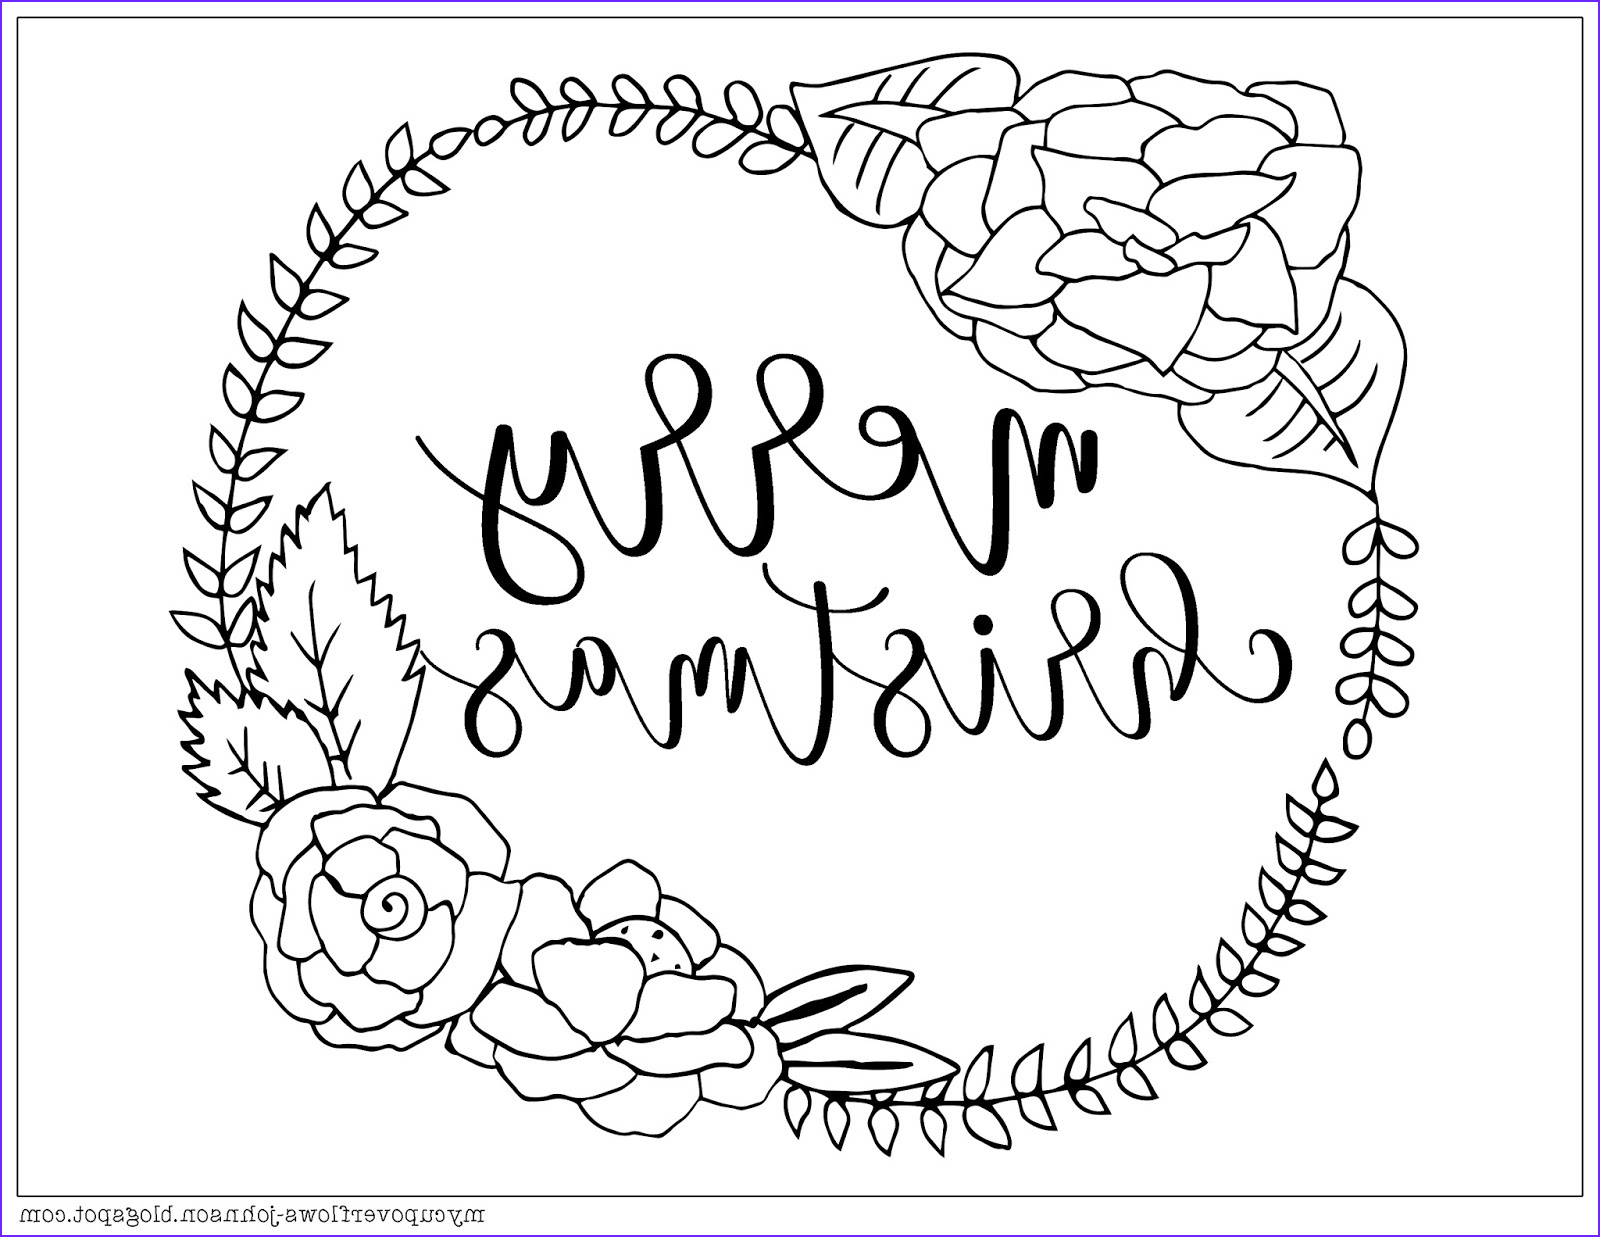 Merry Christmas Coloring Page that Say (merry Christmas) Beautiful Photos My Cup Overflows Christmas Coloring Pages